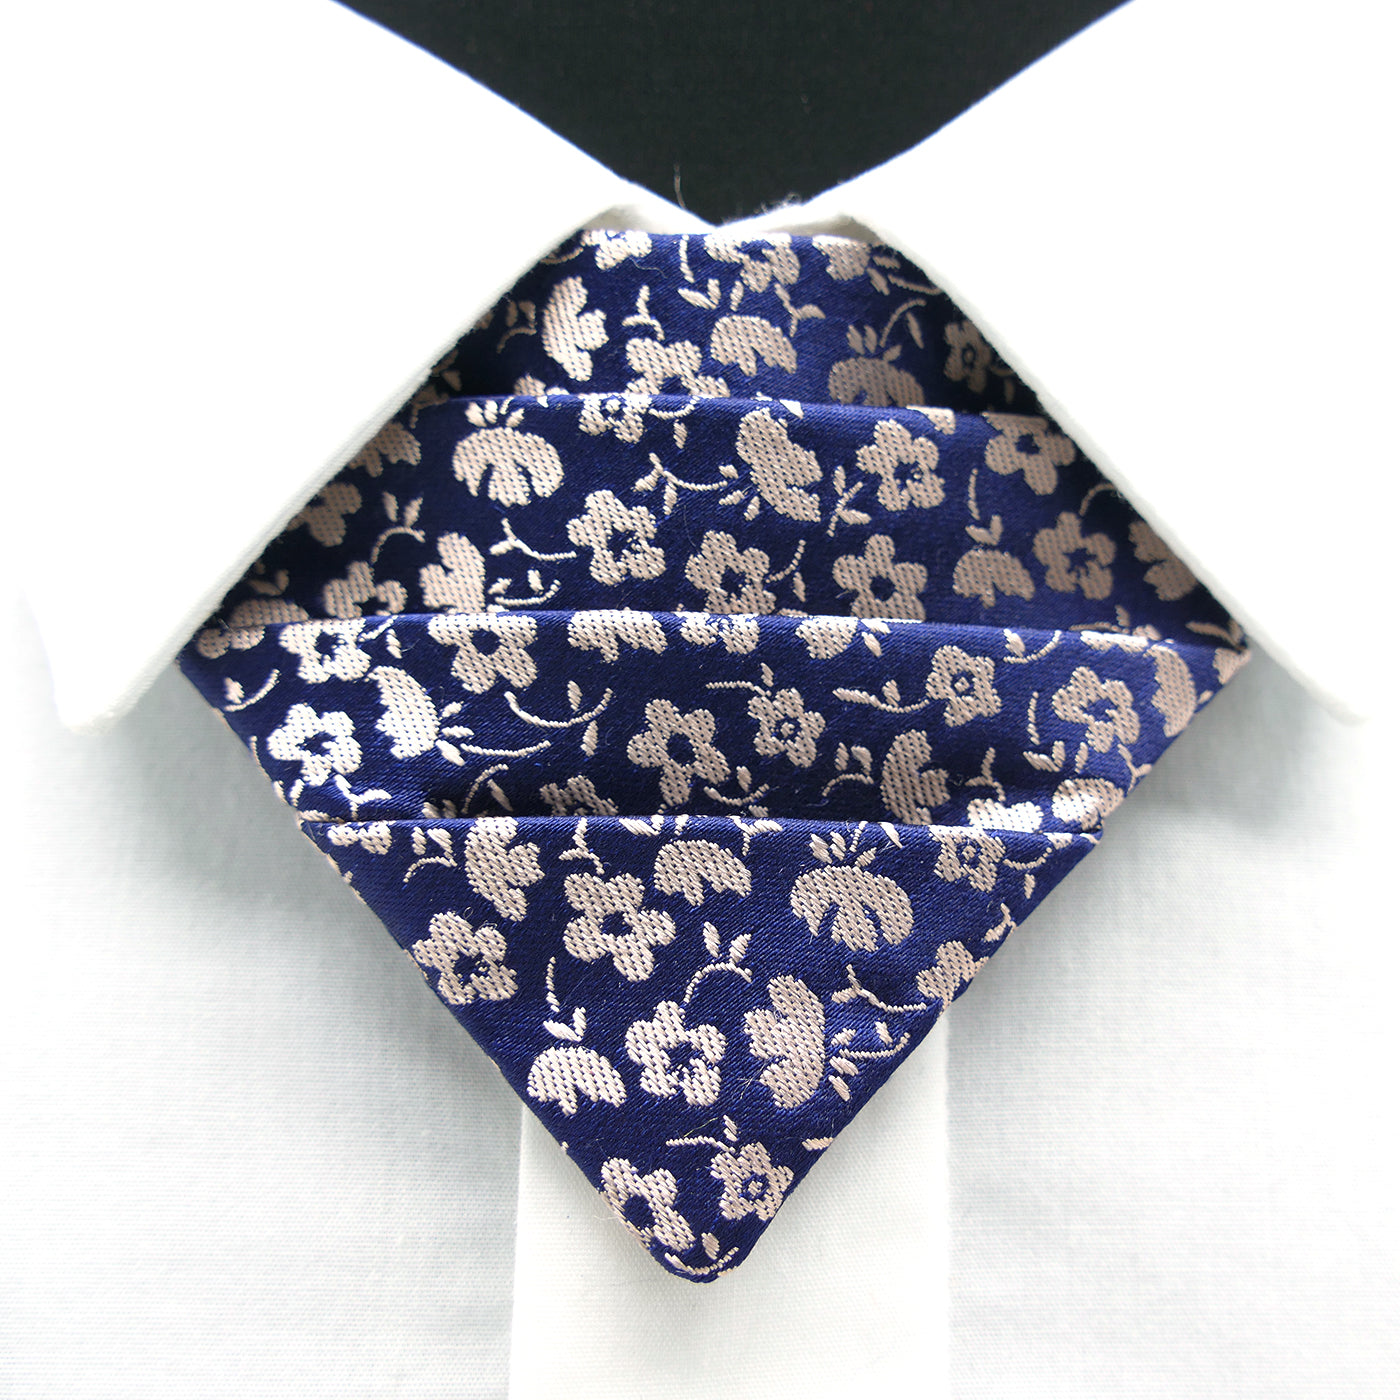 BERLIN BOW No. I design: pirlo flower